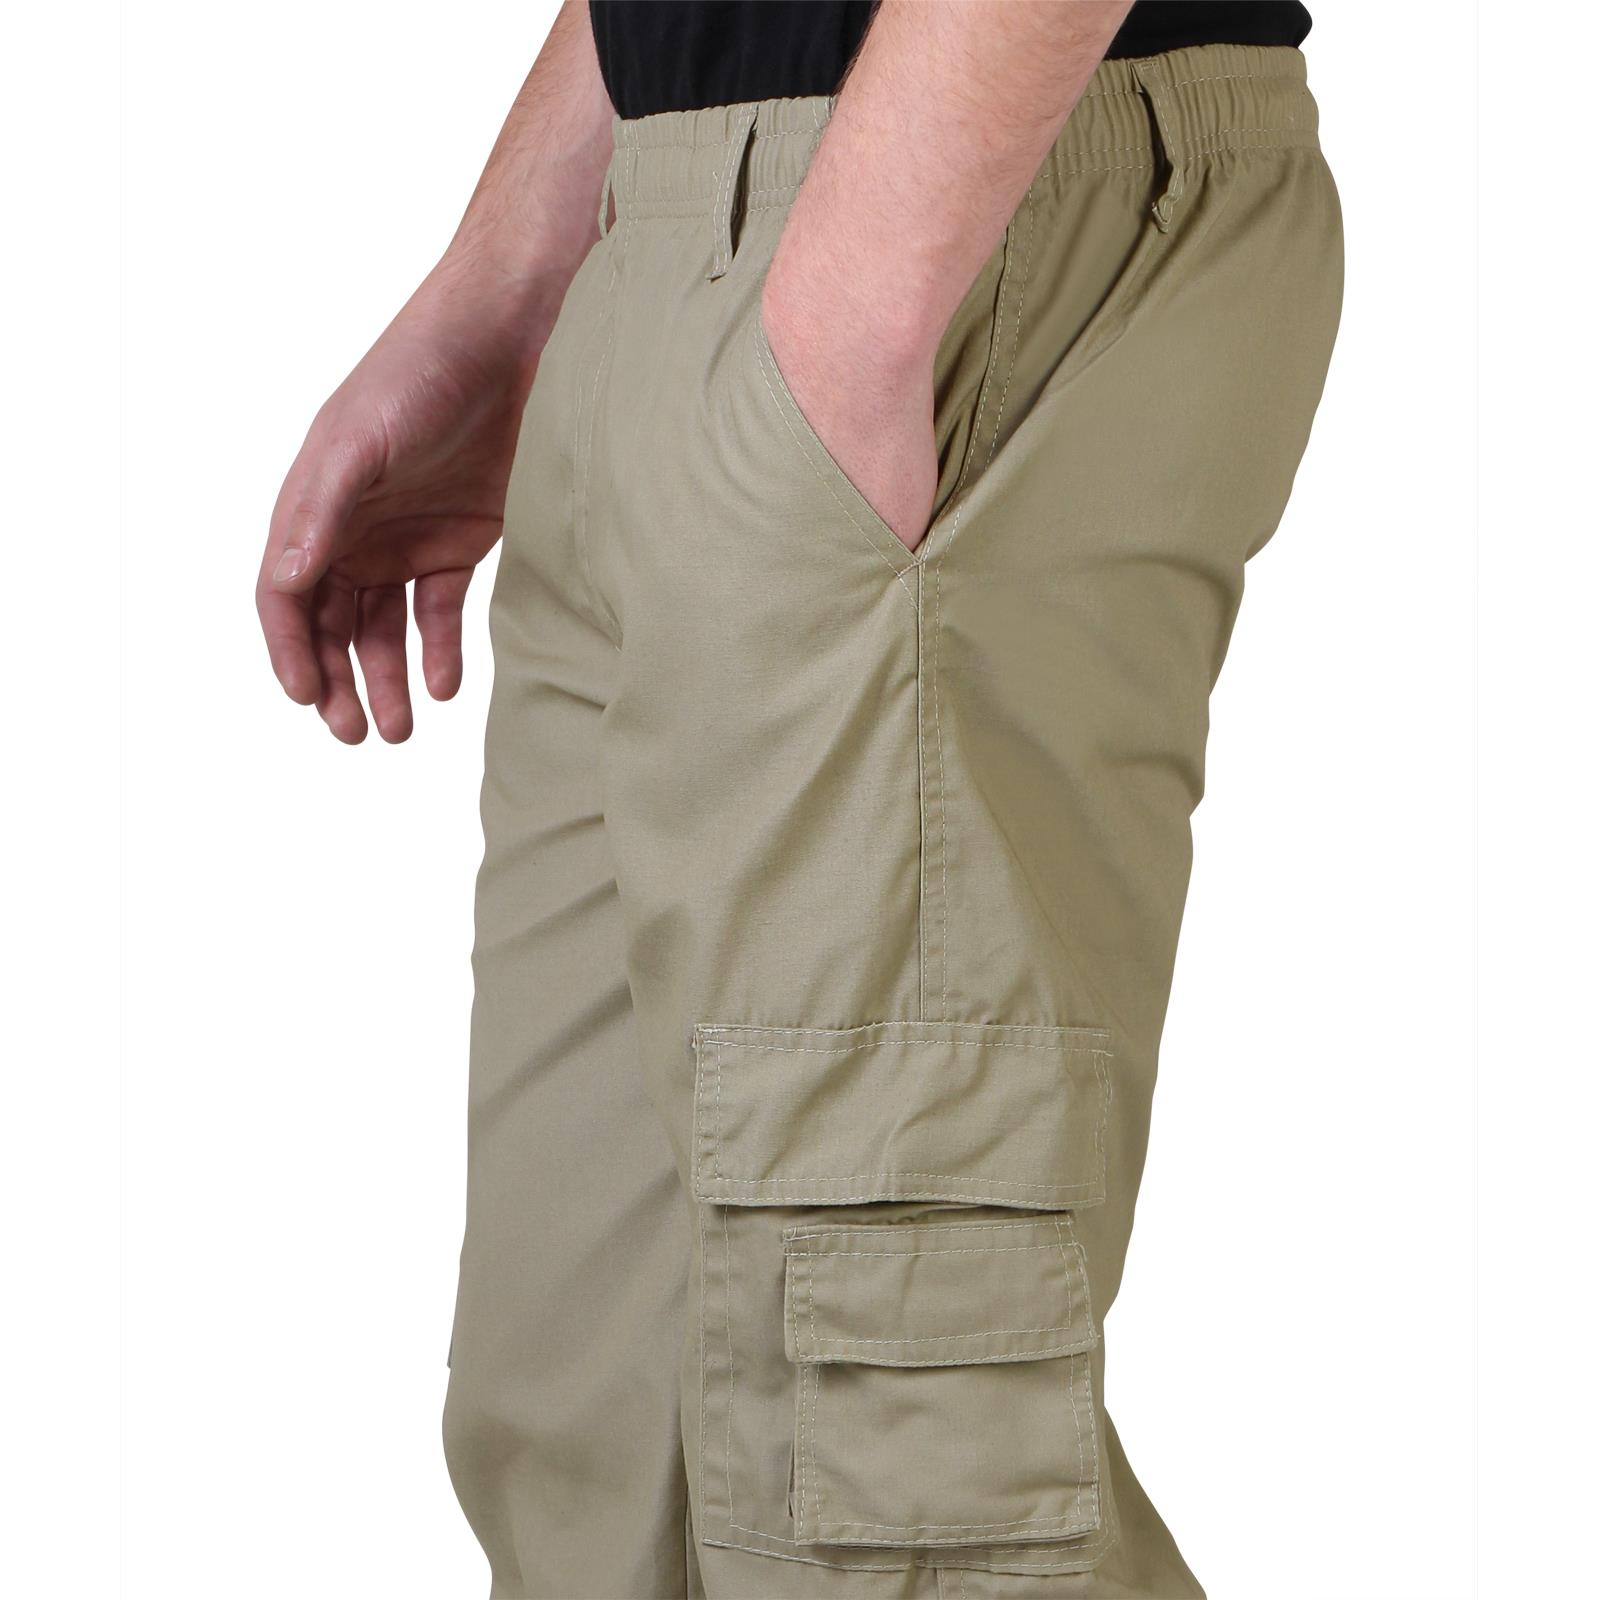 Mens-Army-Cargo-Trousers-Cotton-Combat-Pants-Military-Work-Chinos-Casual-Khakis thumbnail 30